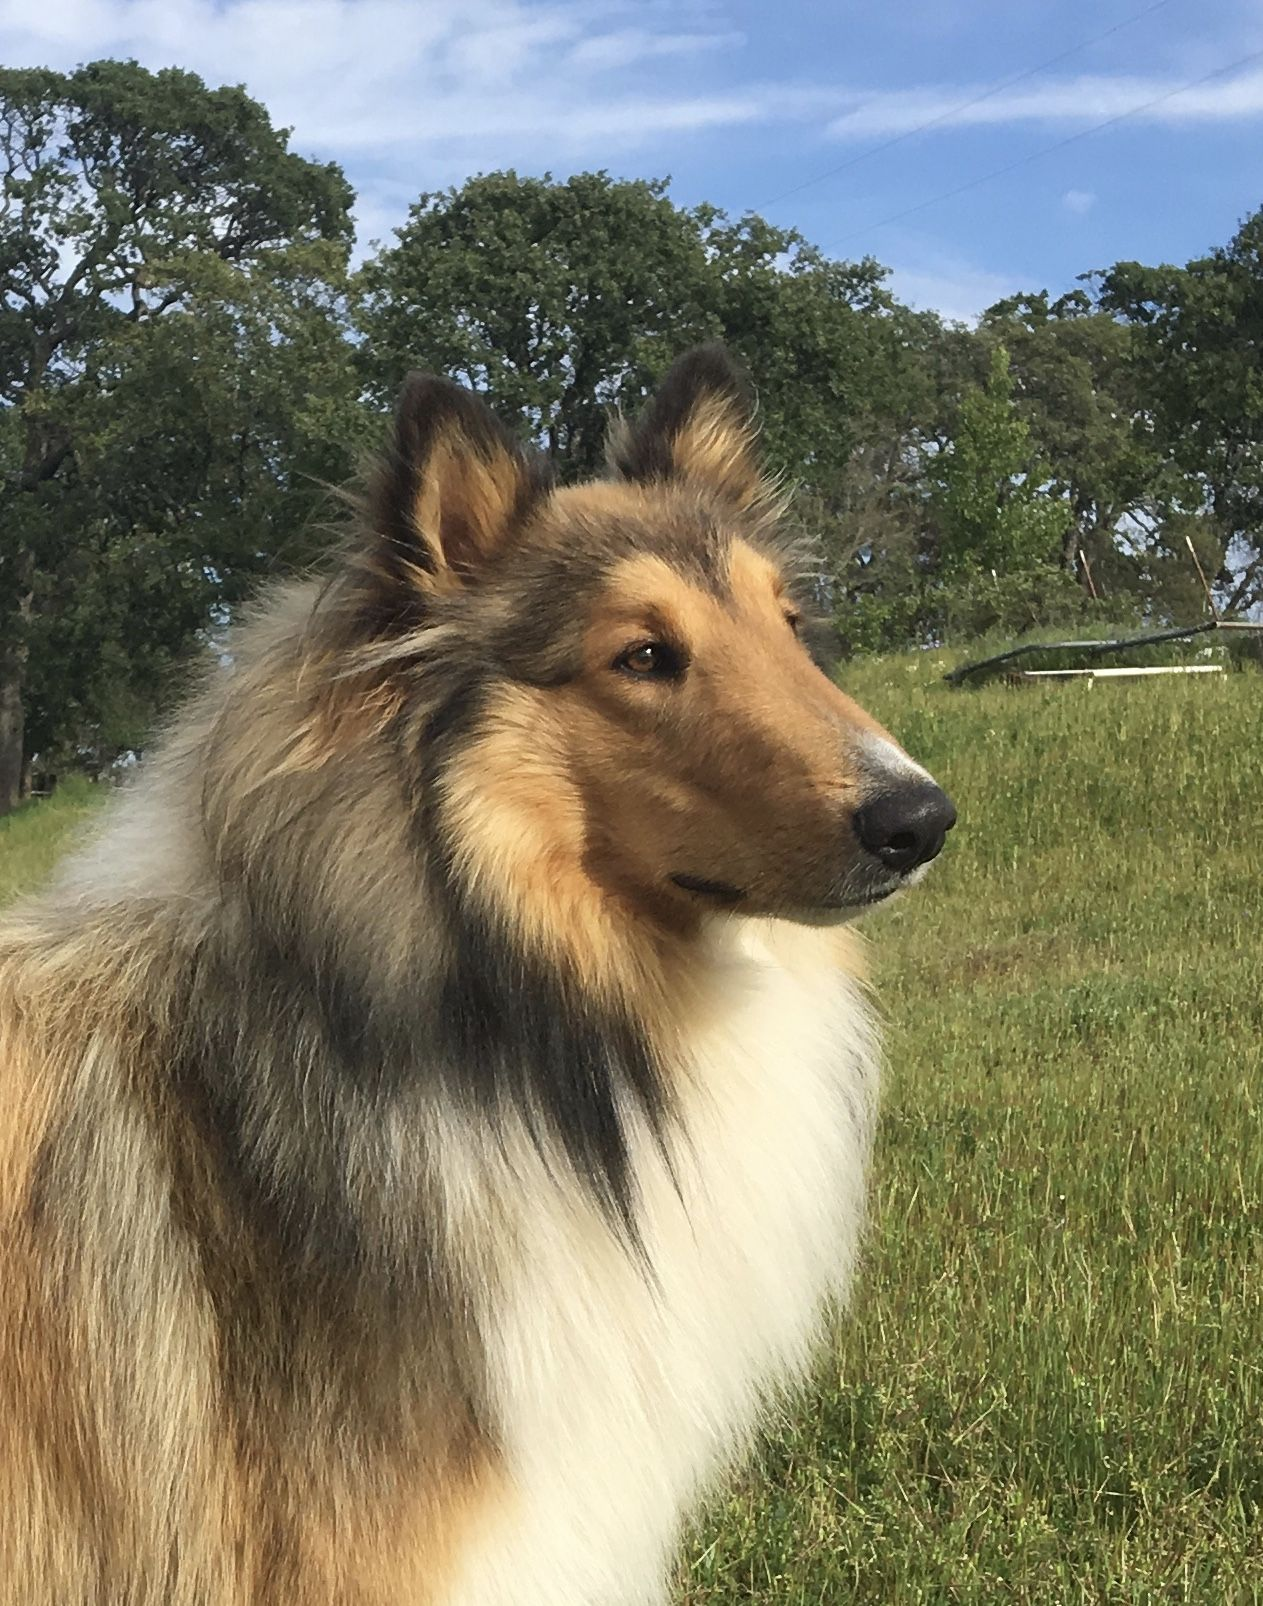 Maverick S Fox Mulder Akc Registered Rough Collie Stud Dog 1 Year Old In 2018 Located In Northern California Rough Collie Stud Dog Collie